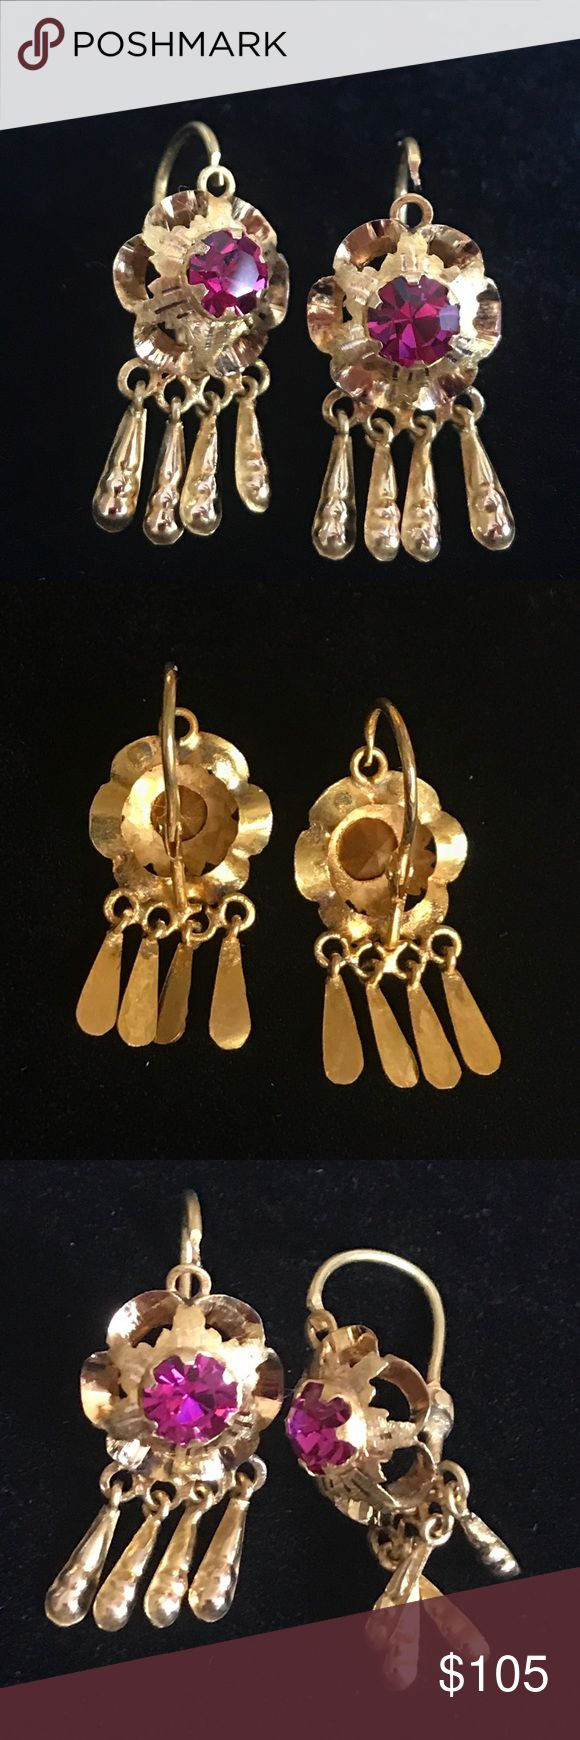 Lovely pair of 14K Yellow Gold Earrings w/ pink This is a beautiful lovely pair of 14K Yellow Gold Dangling Earrings with Round Pink vibrant color stones! Weights approximately 2 Grams. This pair is not stamped but tested 14K Jewelry Earrings